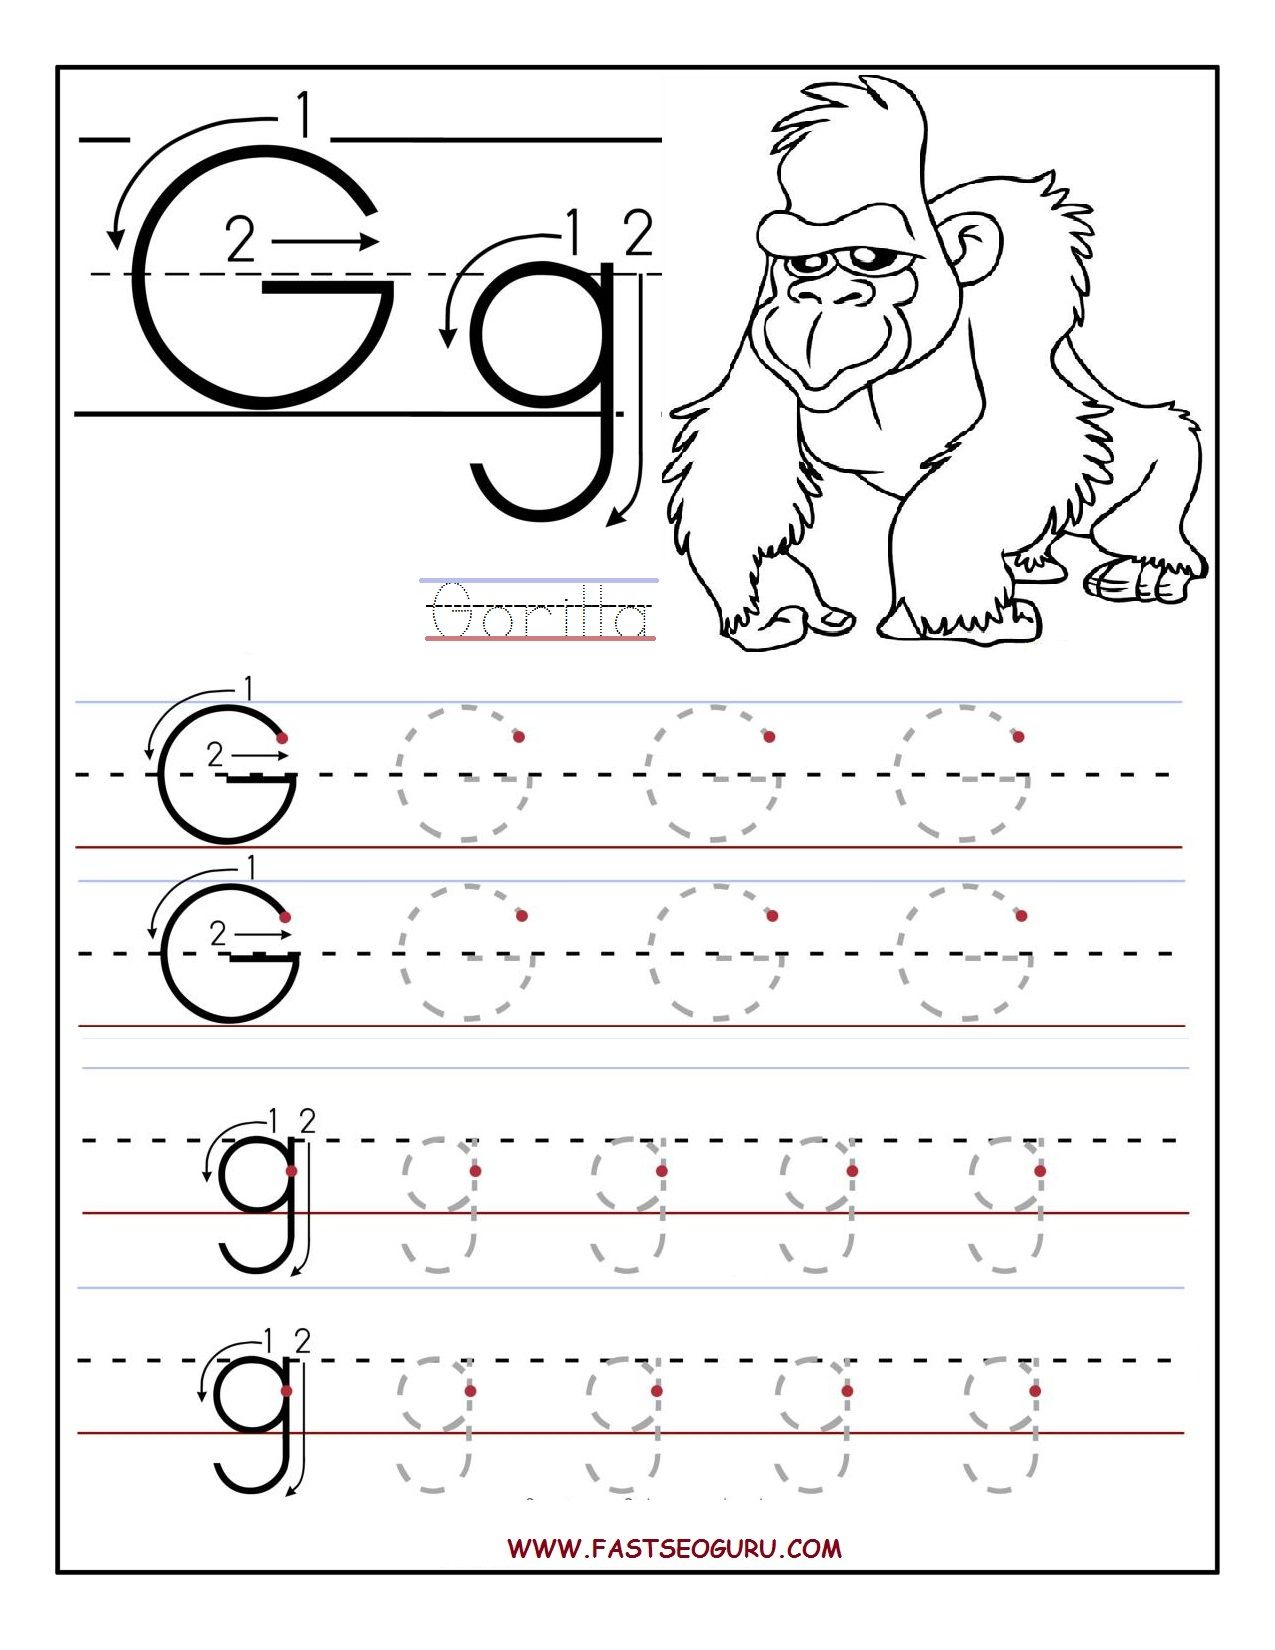 Printable Letter G Tracing Worksheets For Preschool pertaining to G Letter Worksheets Preschool